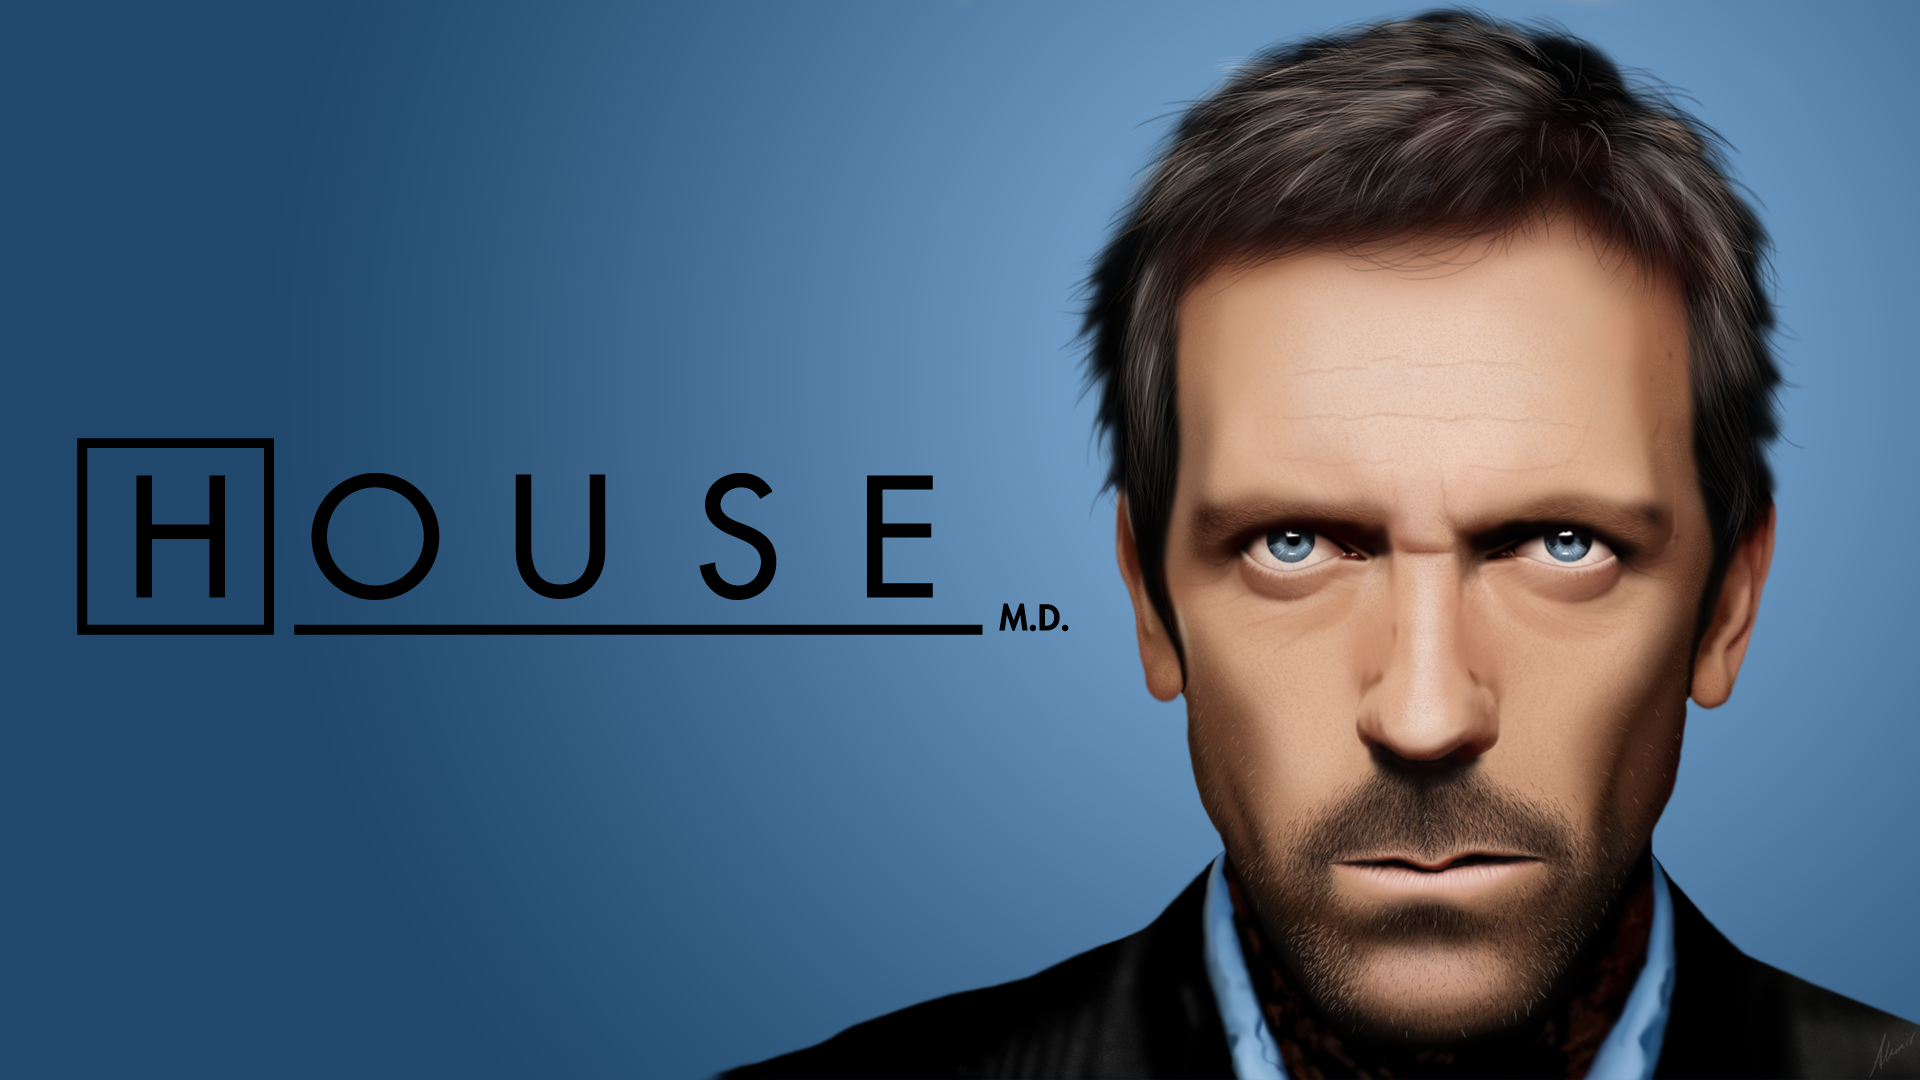 dr house online